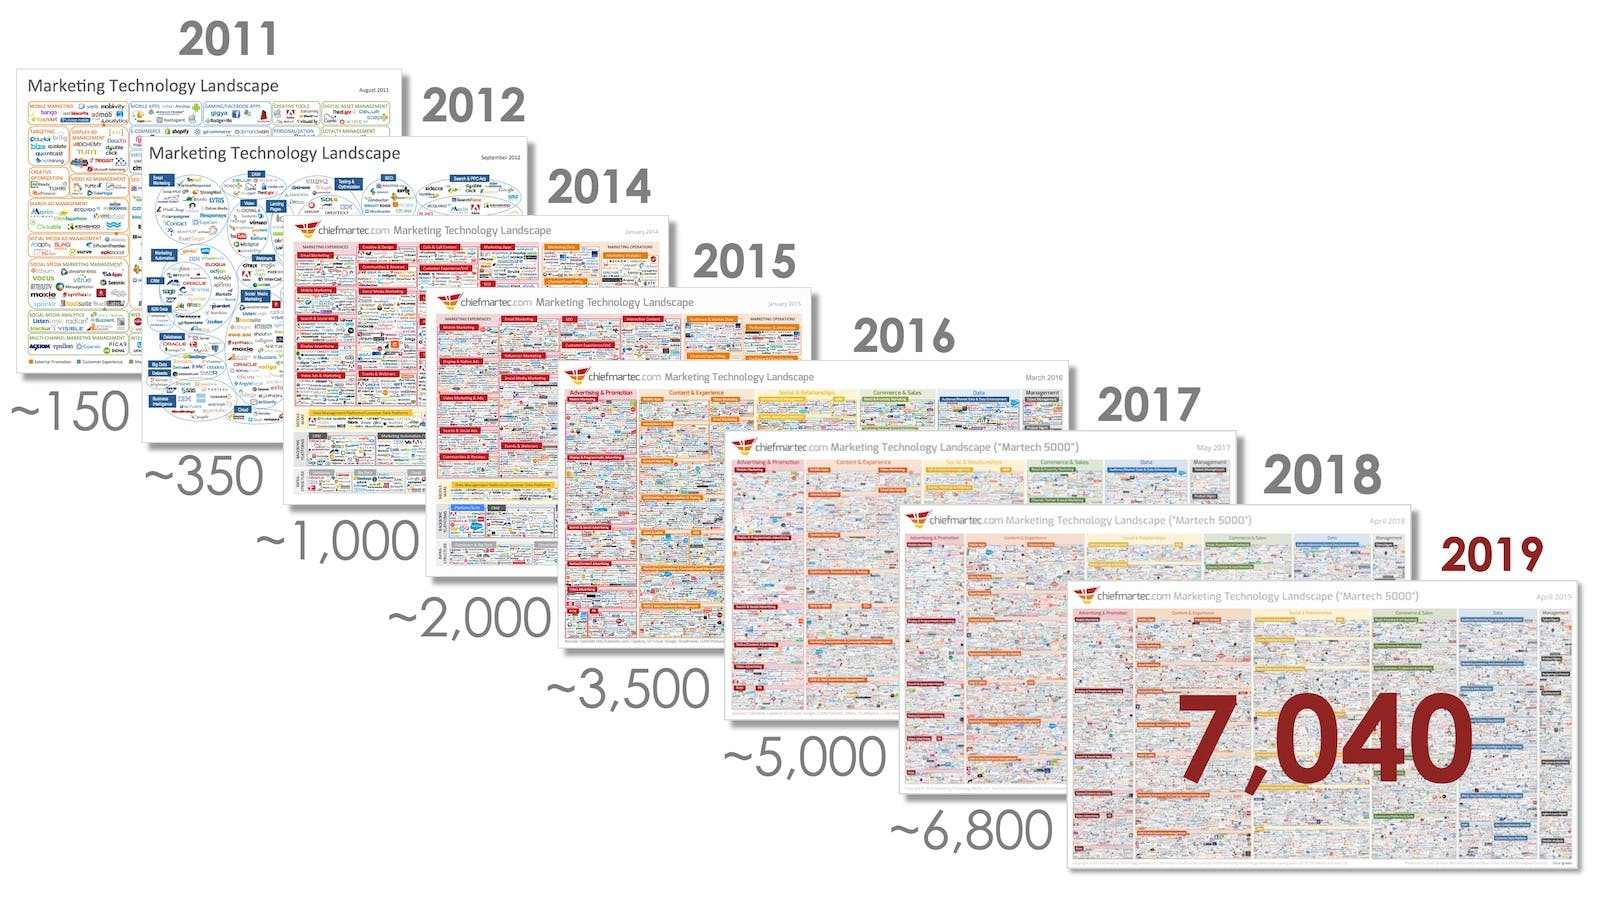 Diagram showing the proliferation of the martech category over the past 10 years